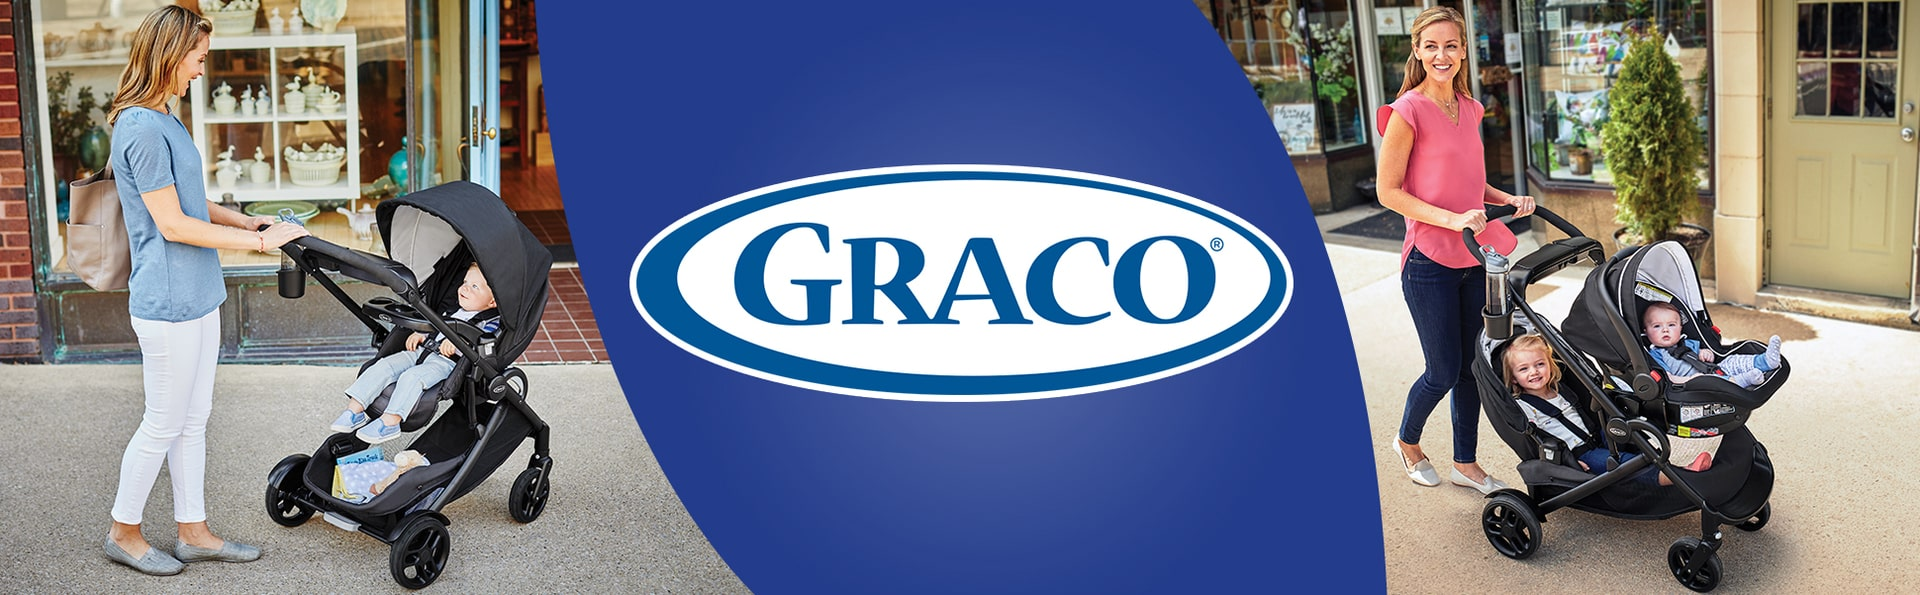 Graco Sit and stand stroller